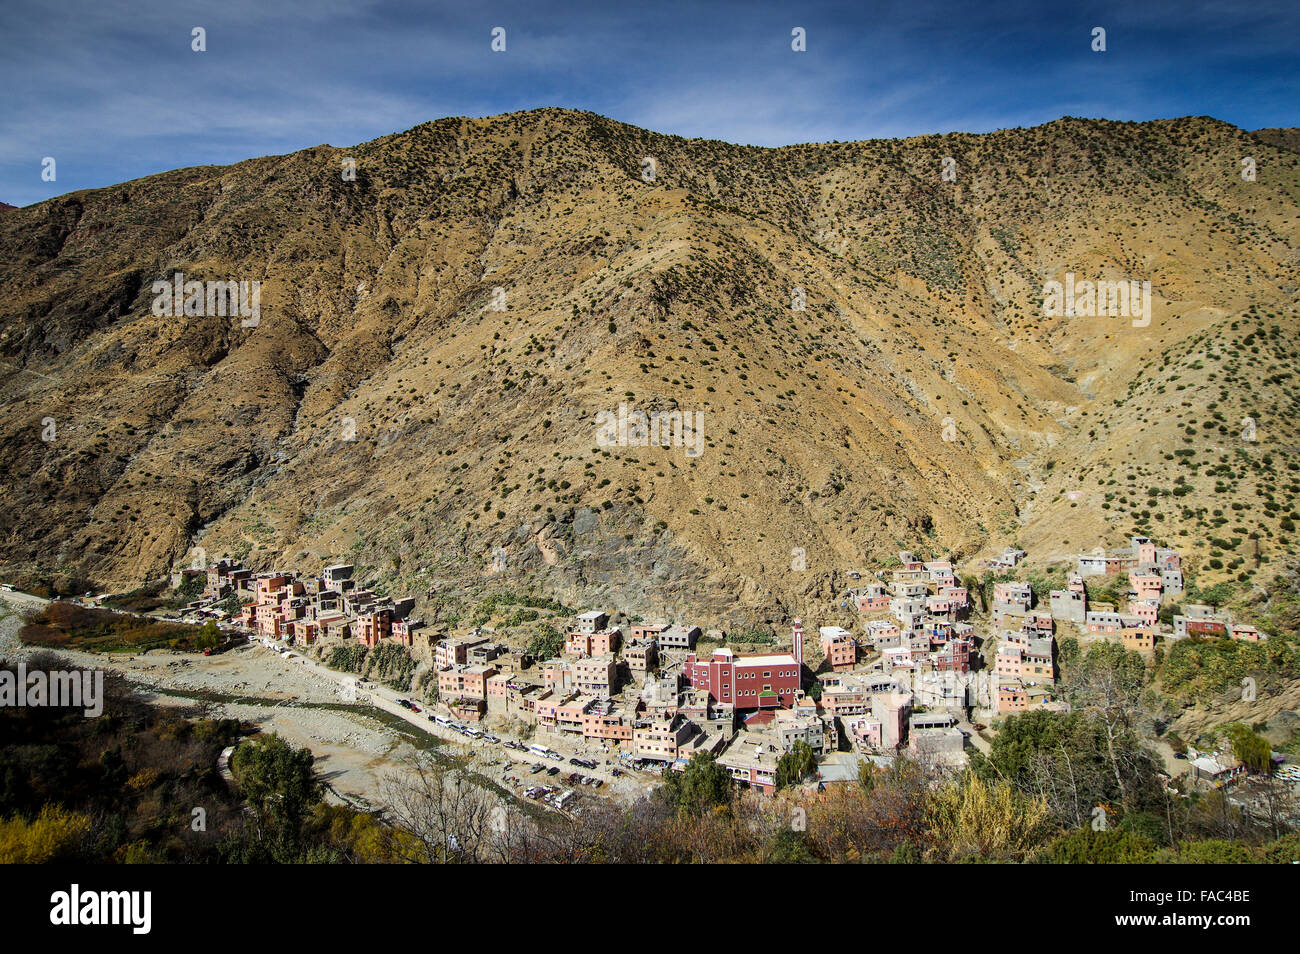 Village of Setti Fatma nestled on the hillsides of Ourika Valley - High Atlas mountains, Morocco Stock Photo